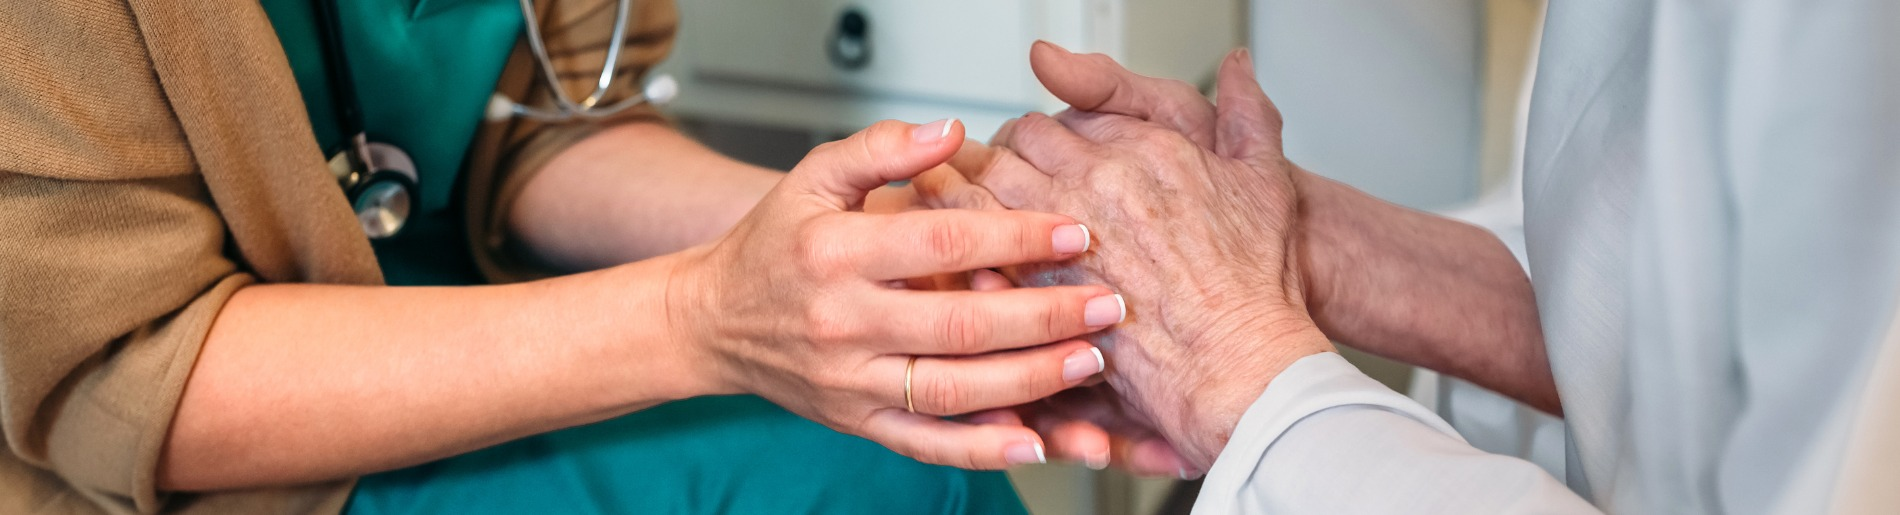 Nurse holding elderly persons hands